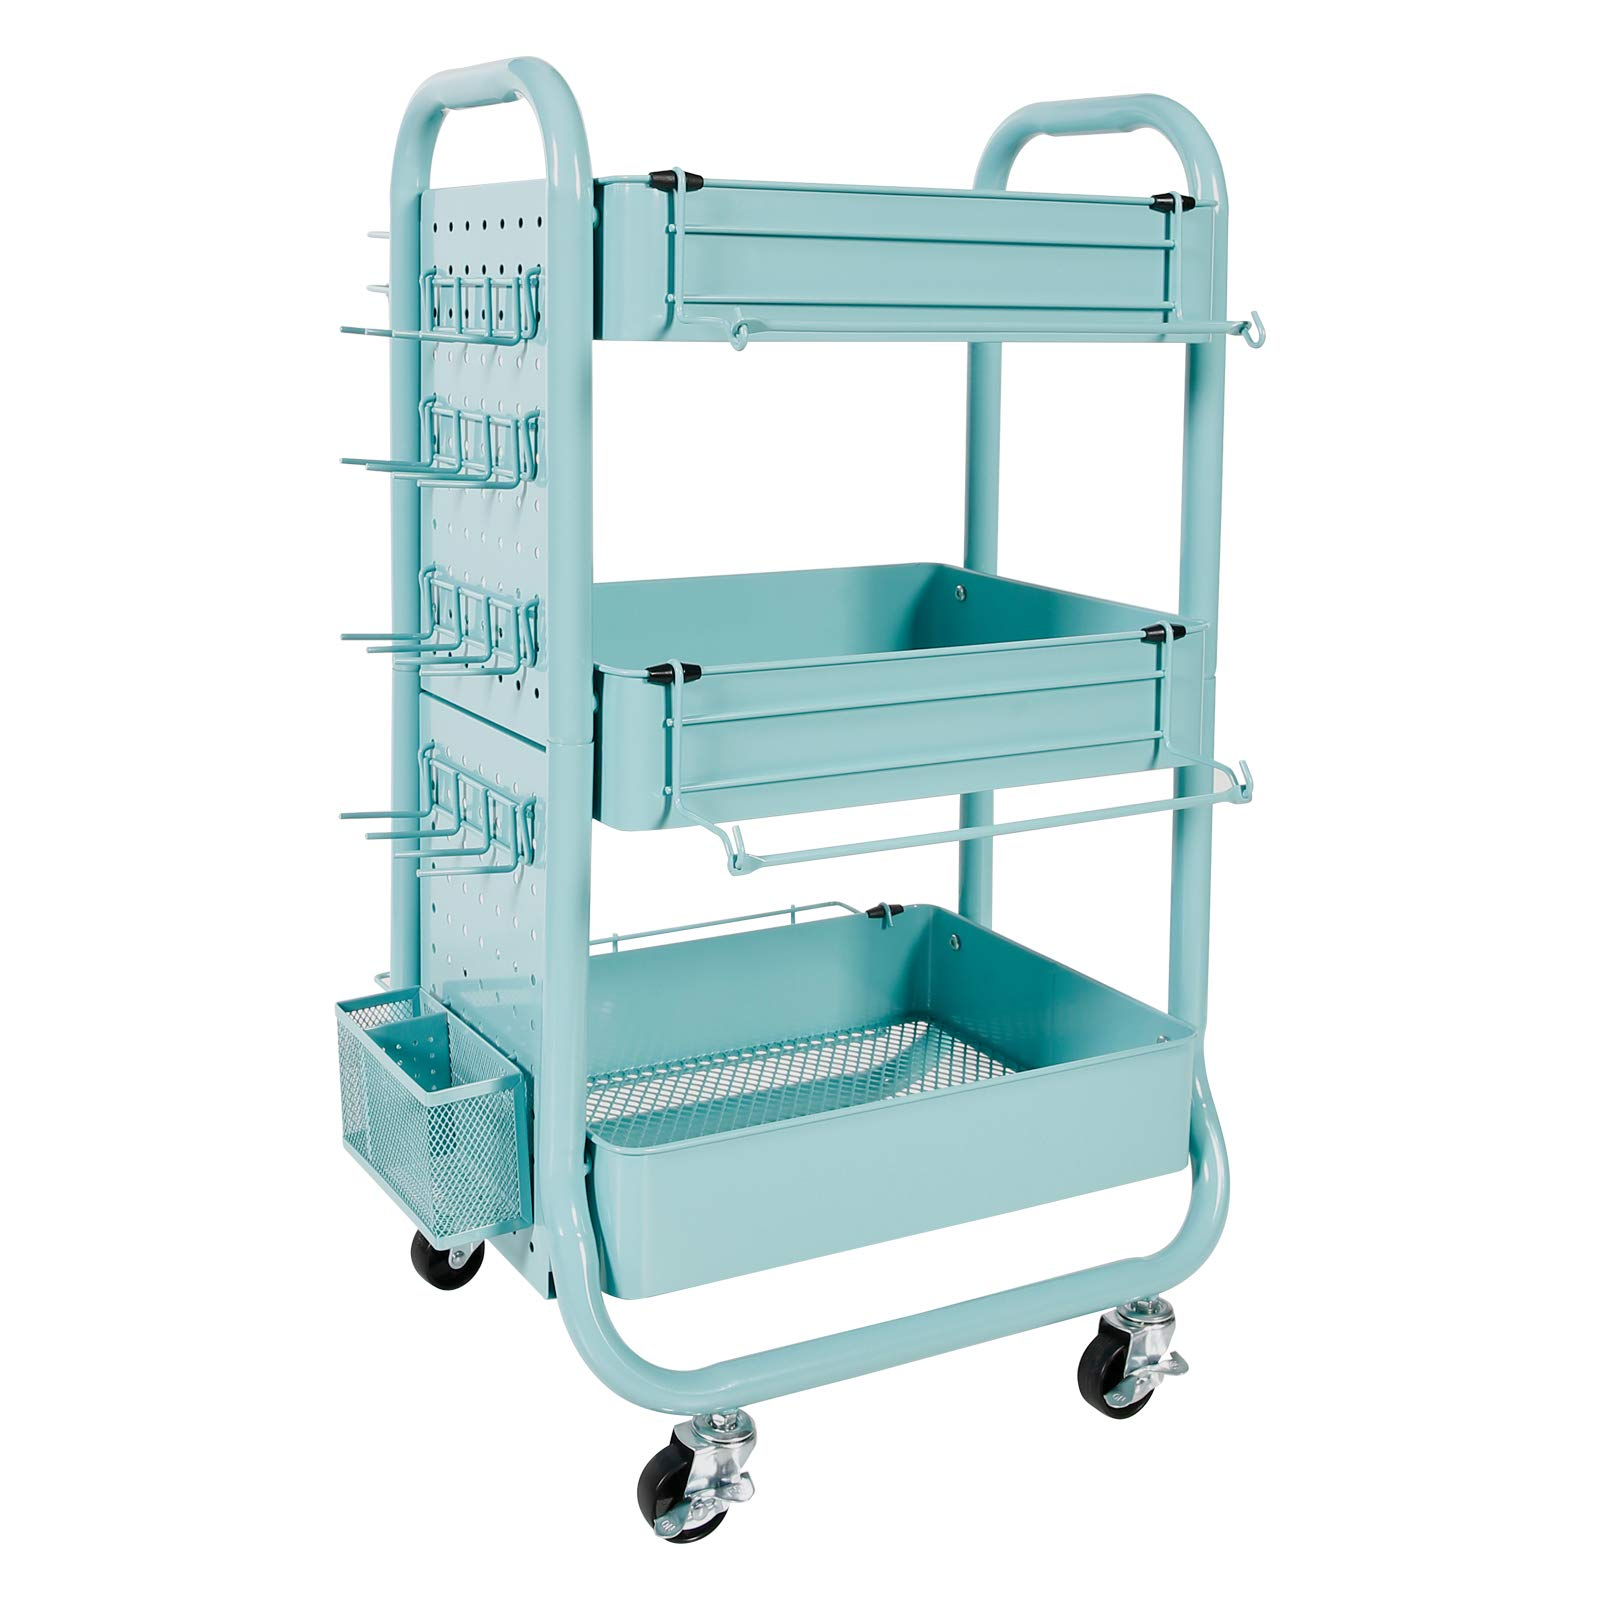 Gramercy Cart by Recollections, Teal by Recollections (Image #1)